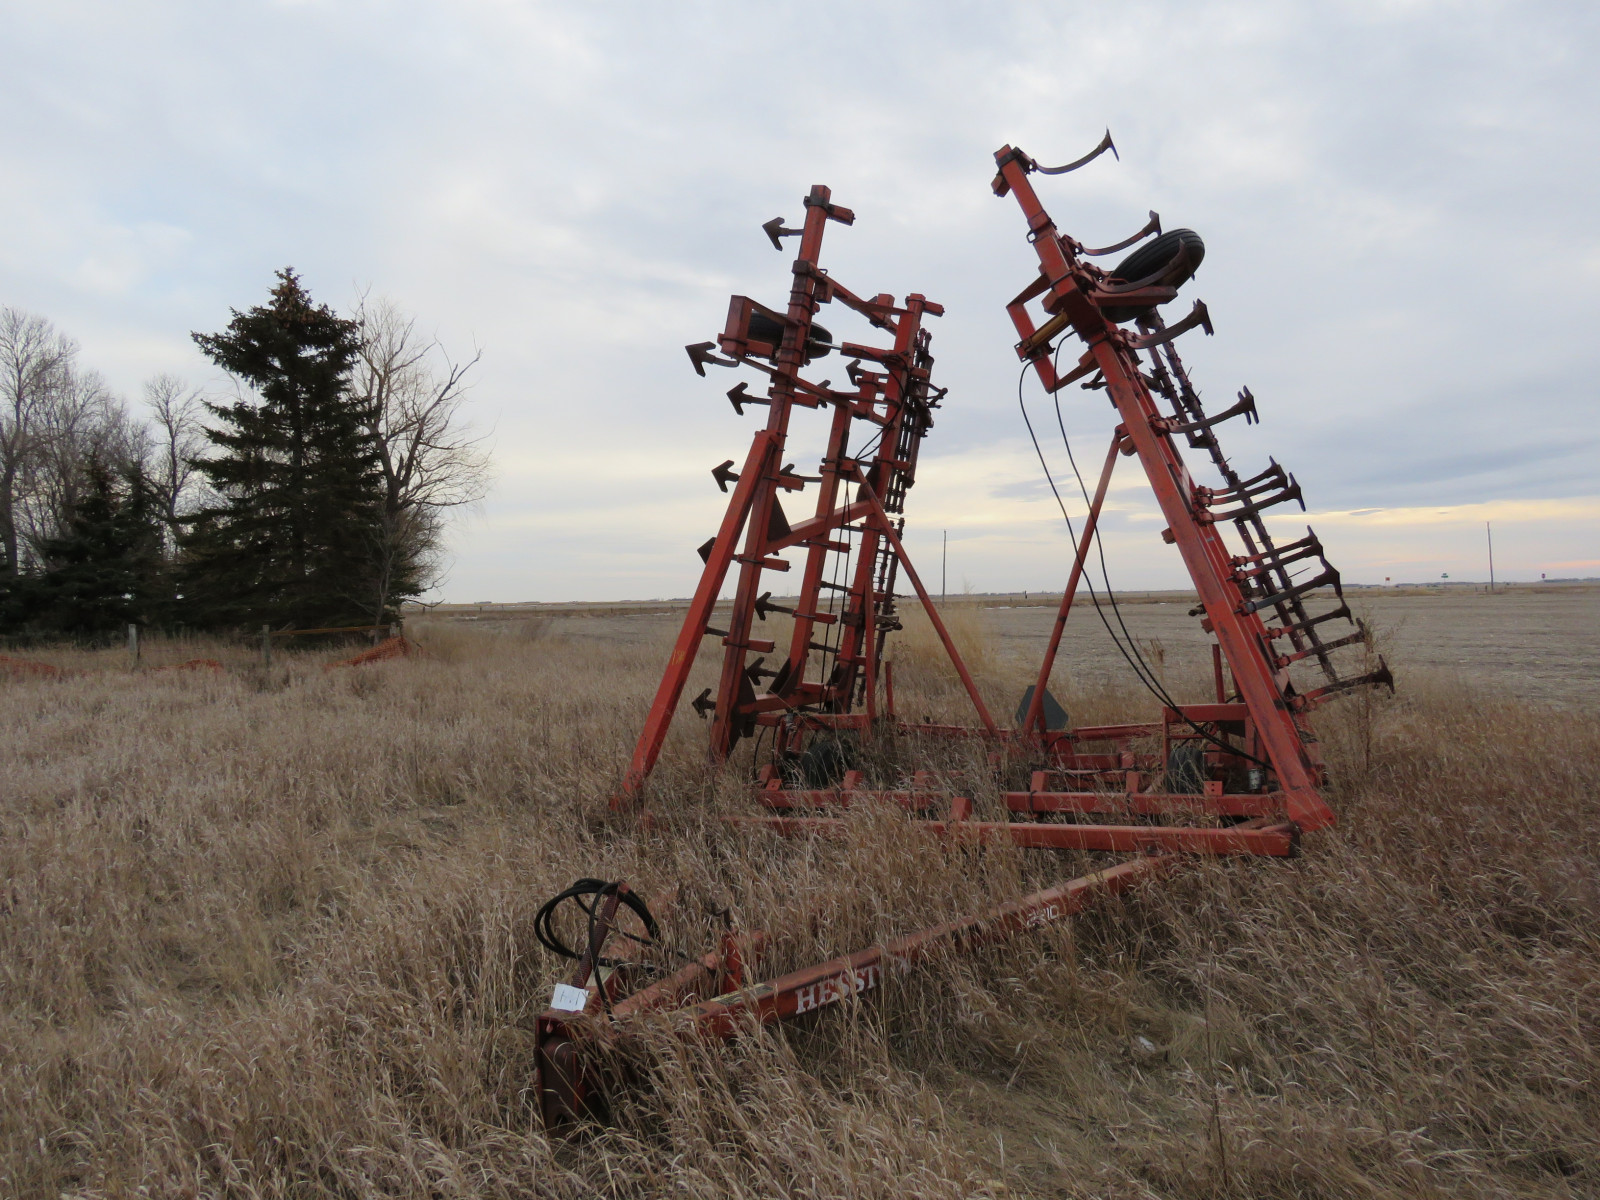 Hesston 37 1/2 ft Field Cultivator - Image 1